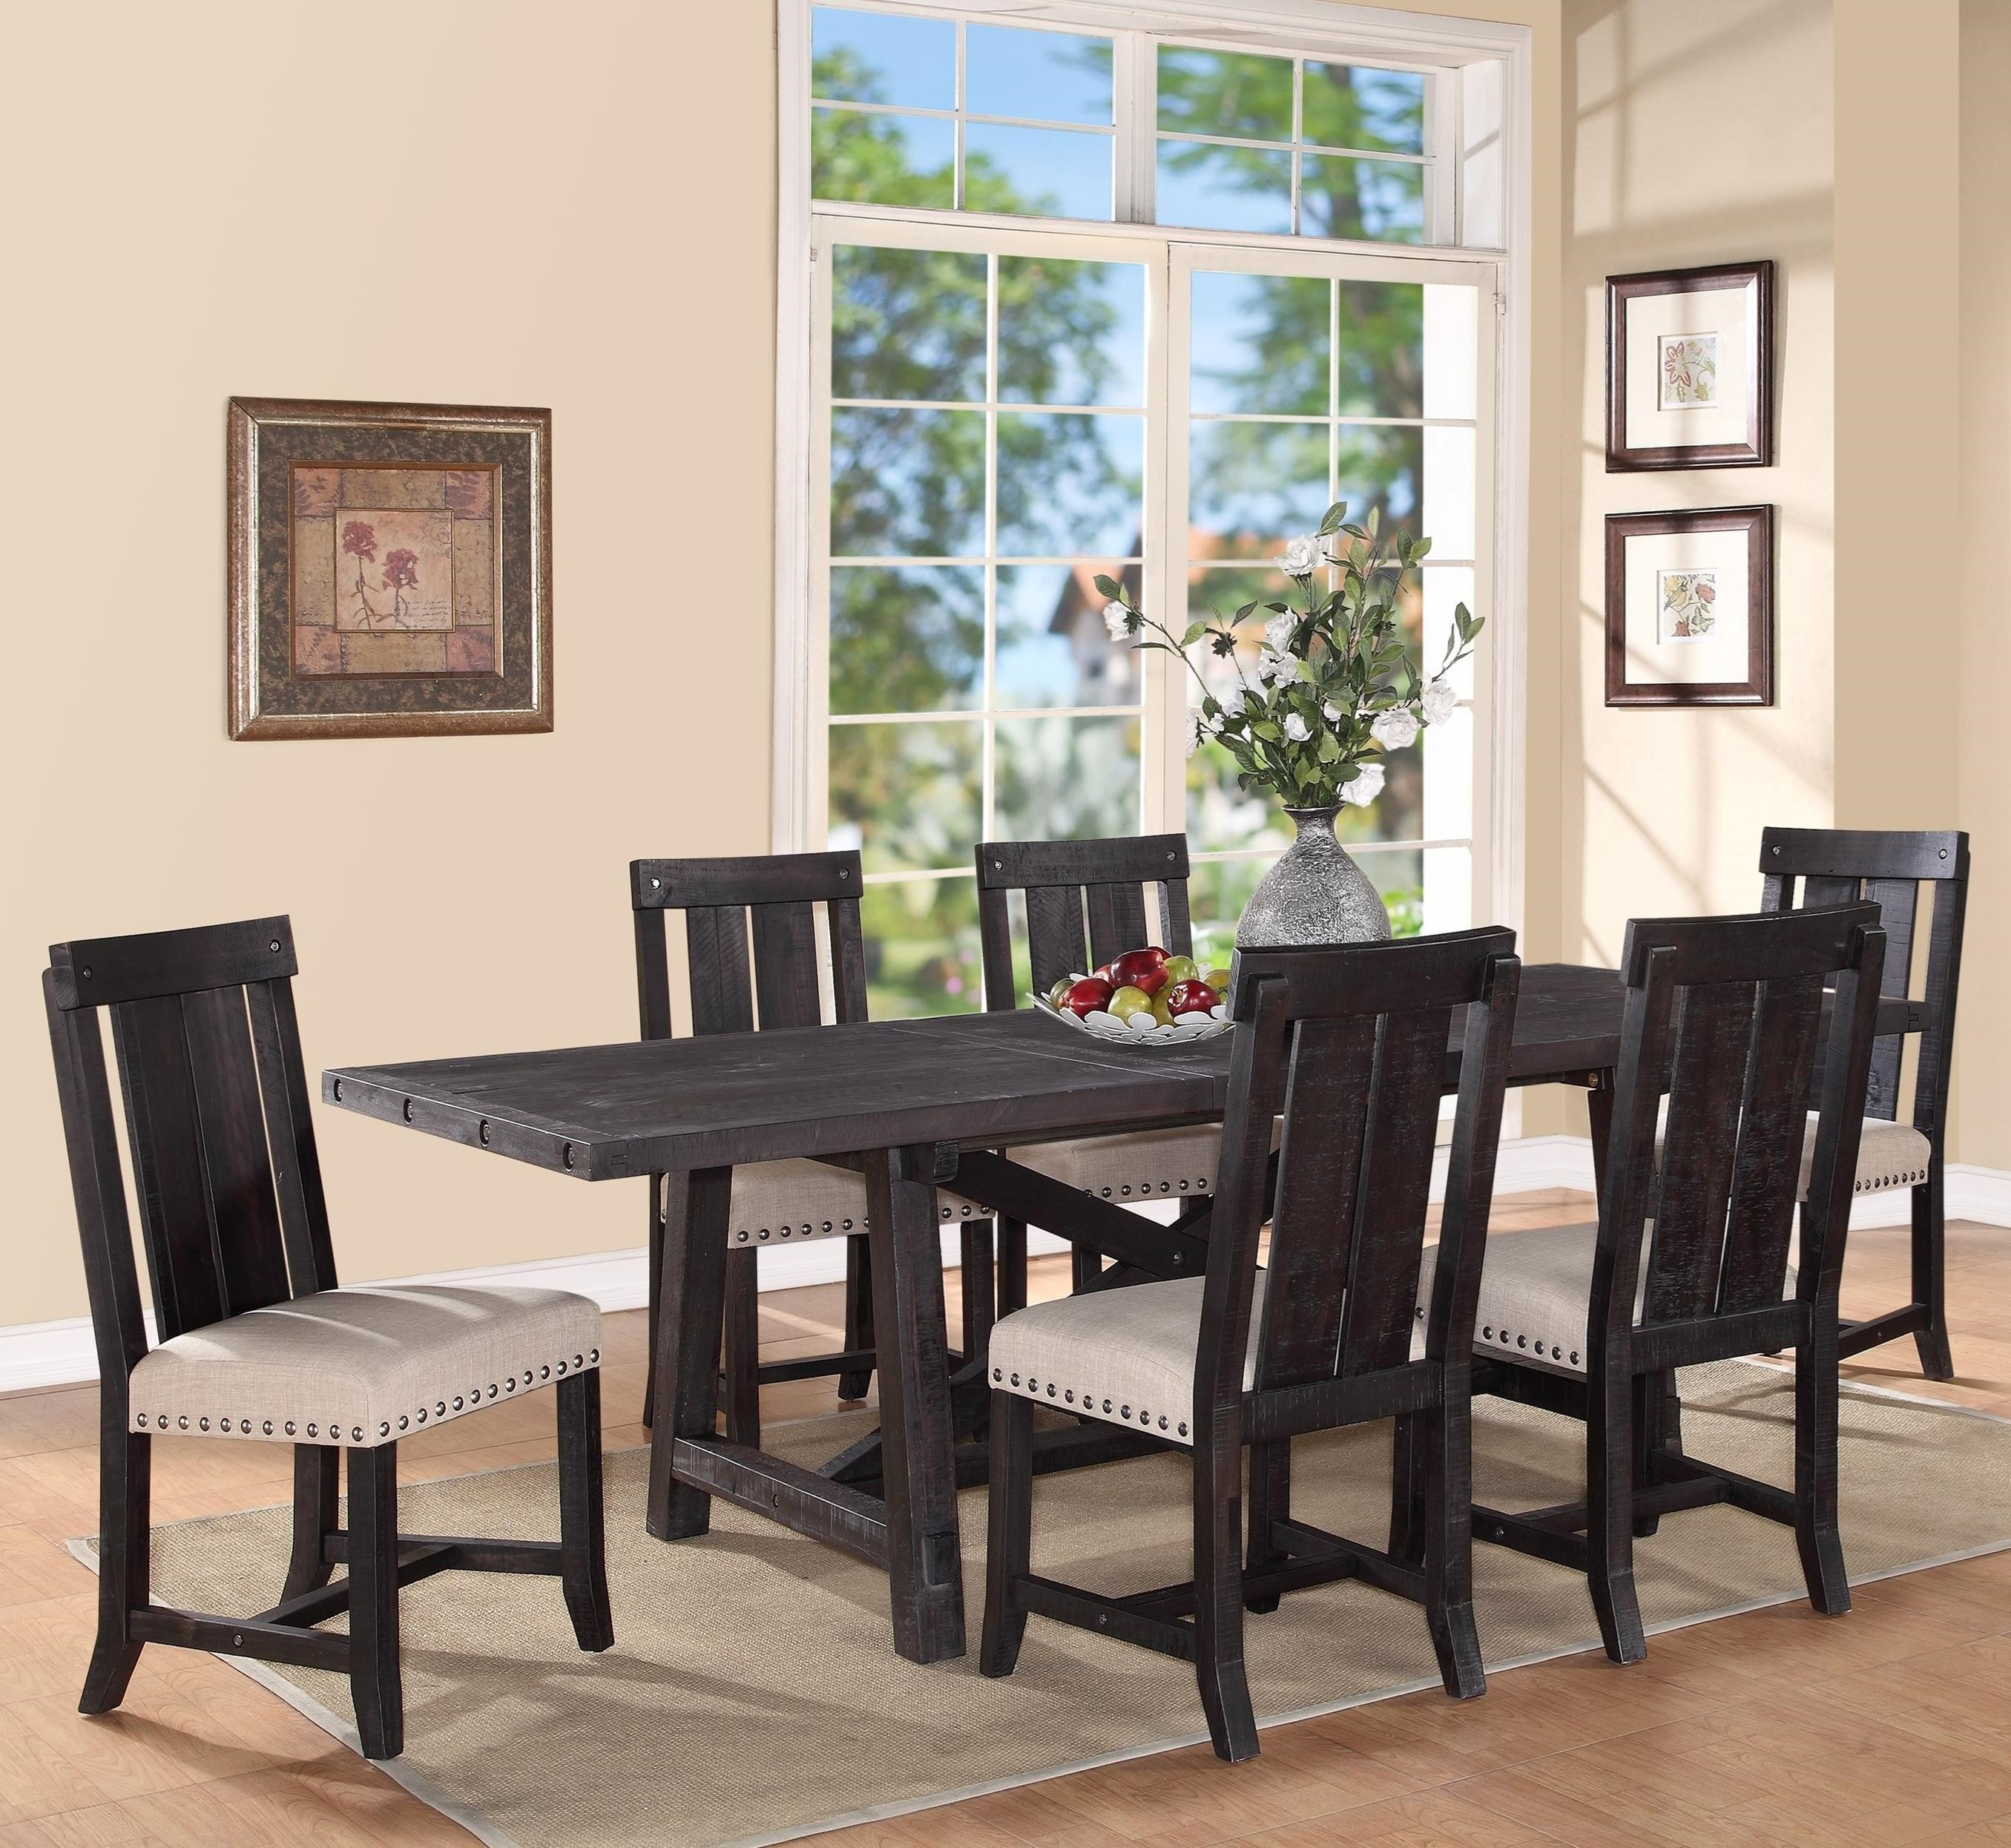 Modus International Zion7-Piece Rectangular Dining Table Set ...  sc 1 st  Ruby-Gordon Furniture u0026 Mattresses : dining table set 7 piece - pezcame.com